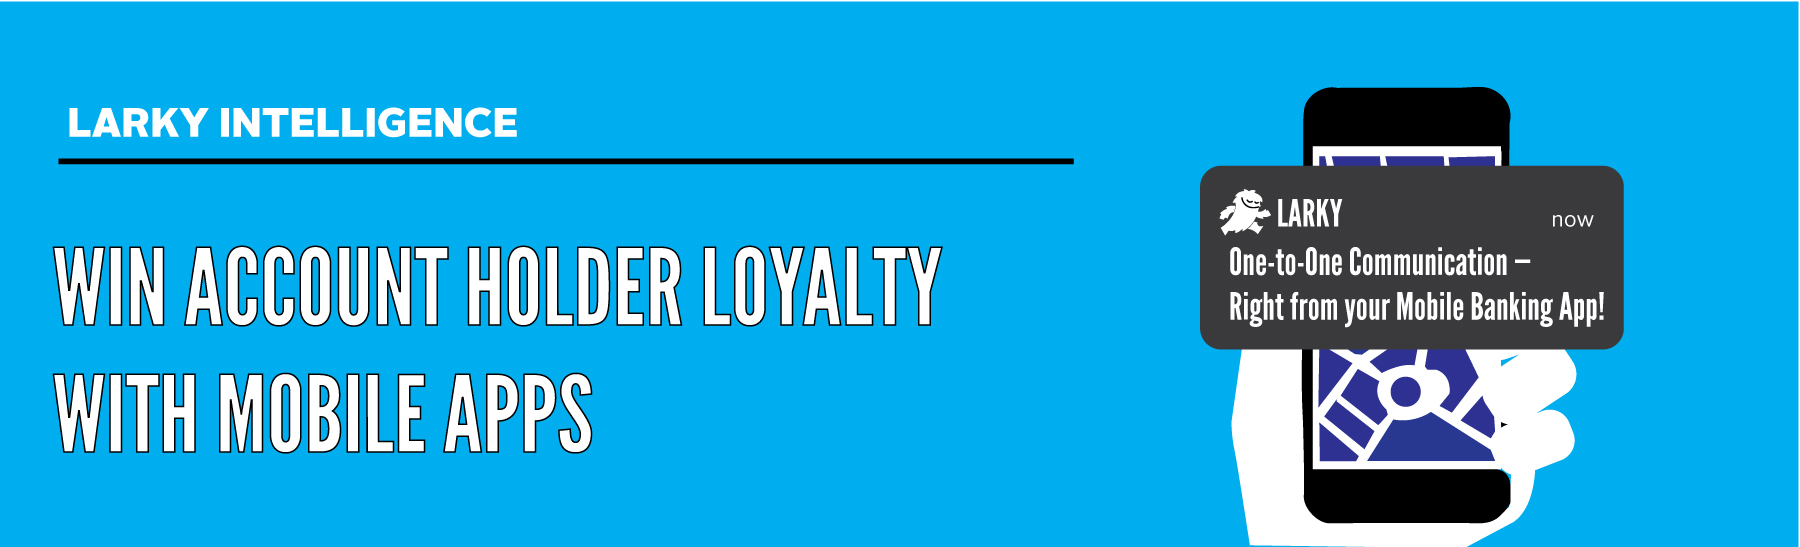 Win Account Holder Loyalty with Mobile Apps